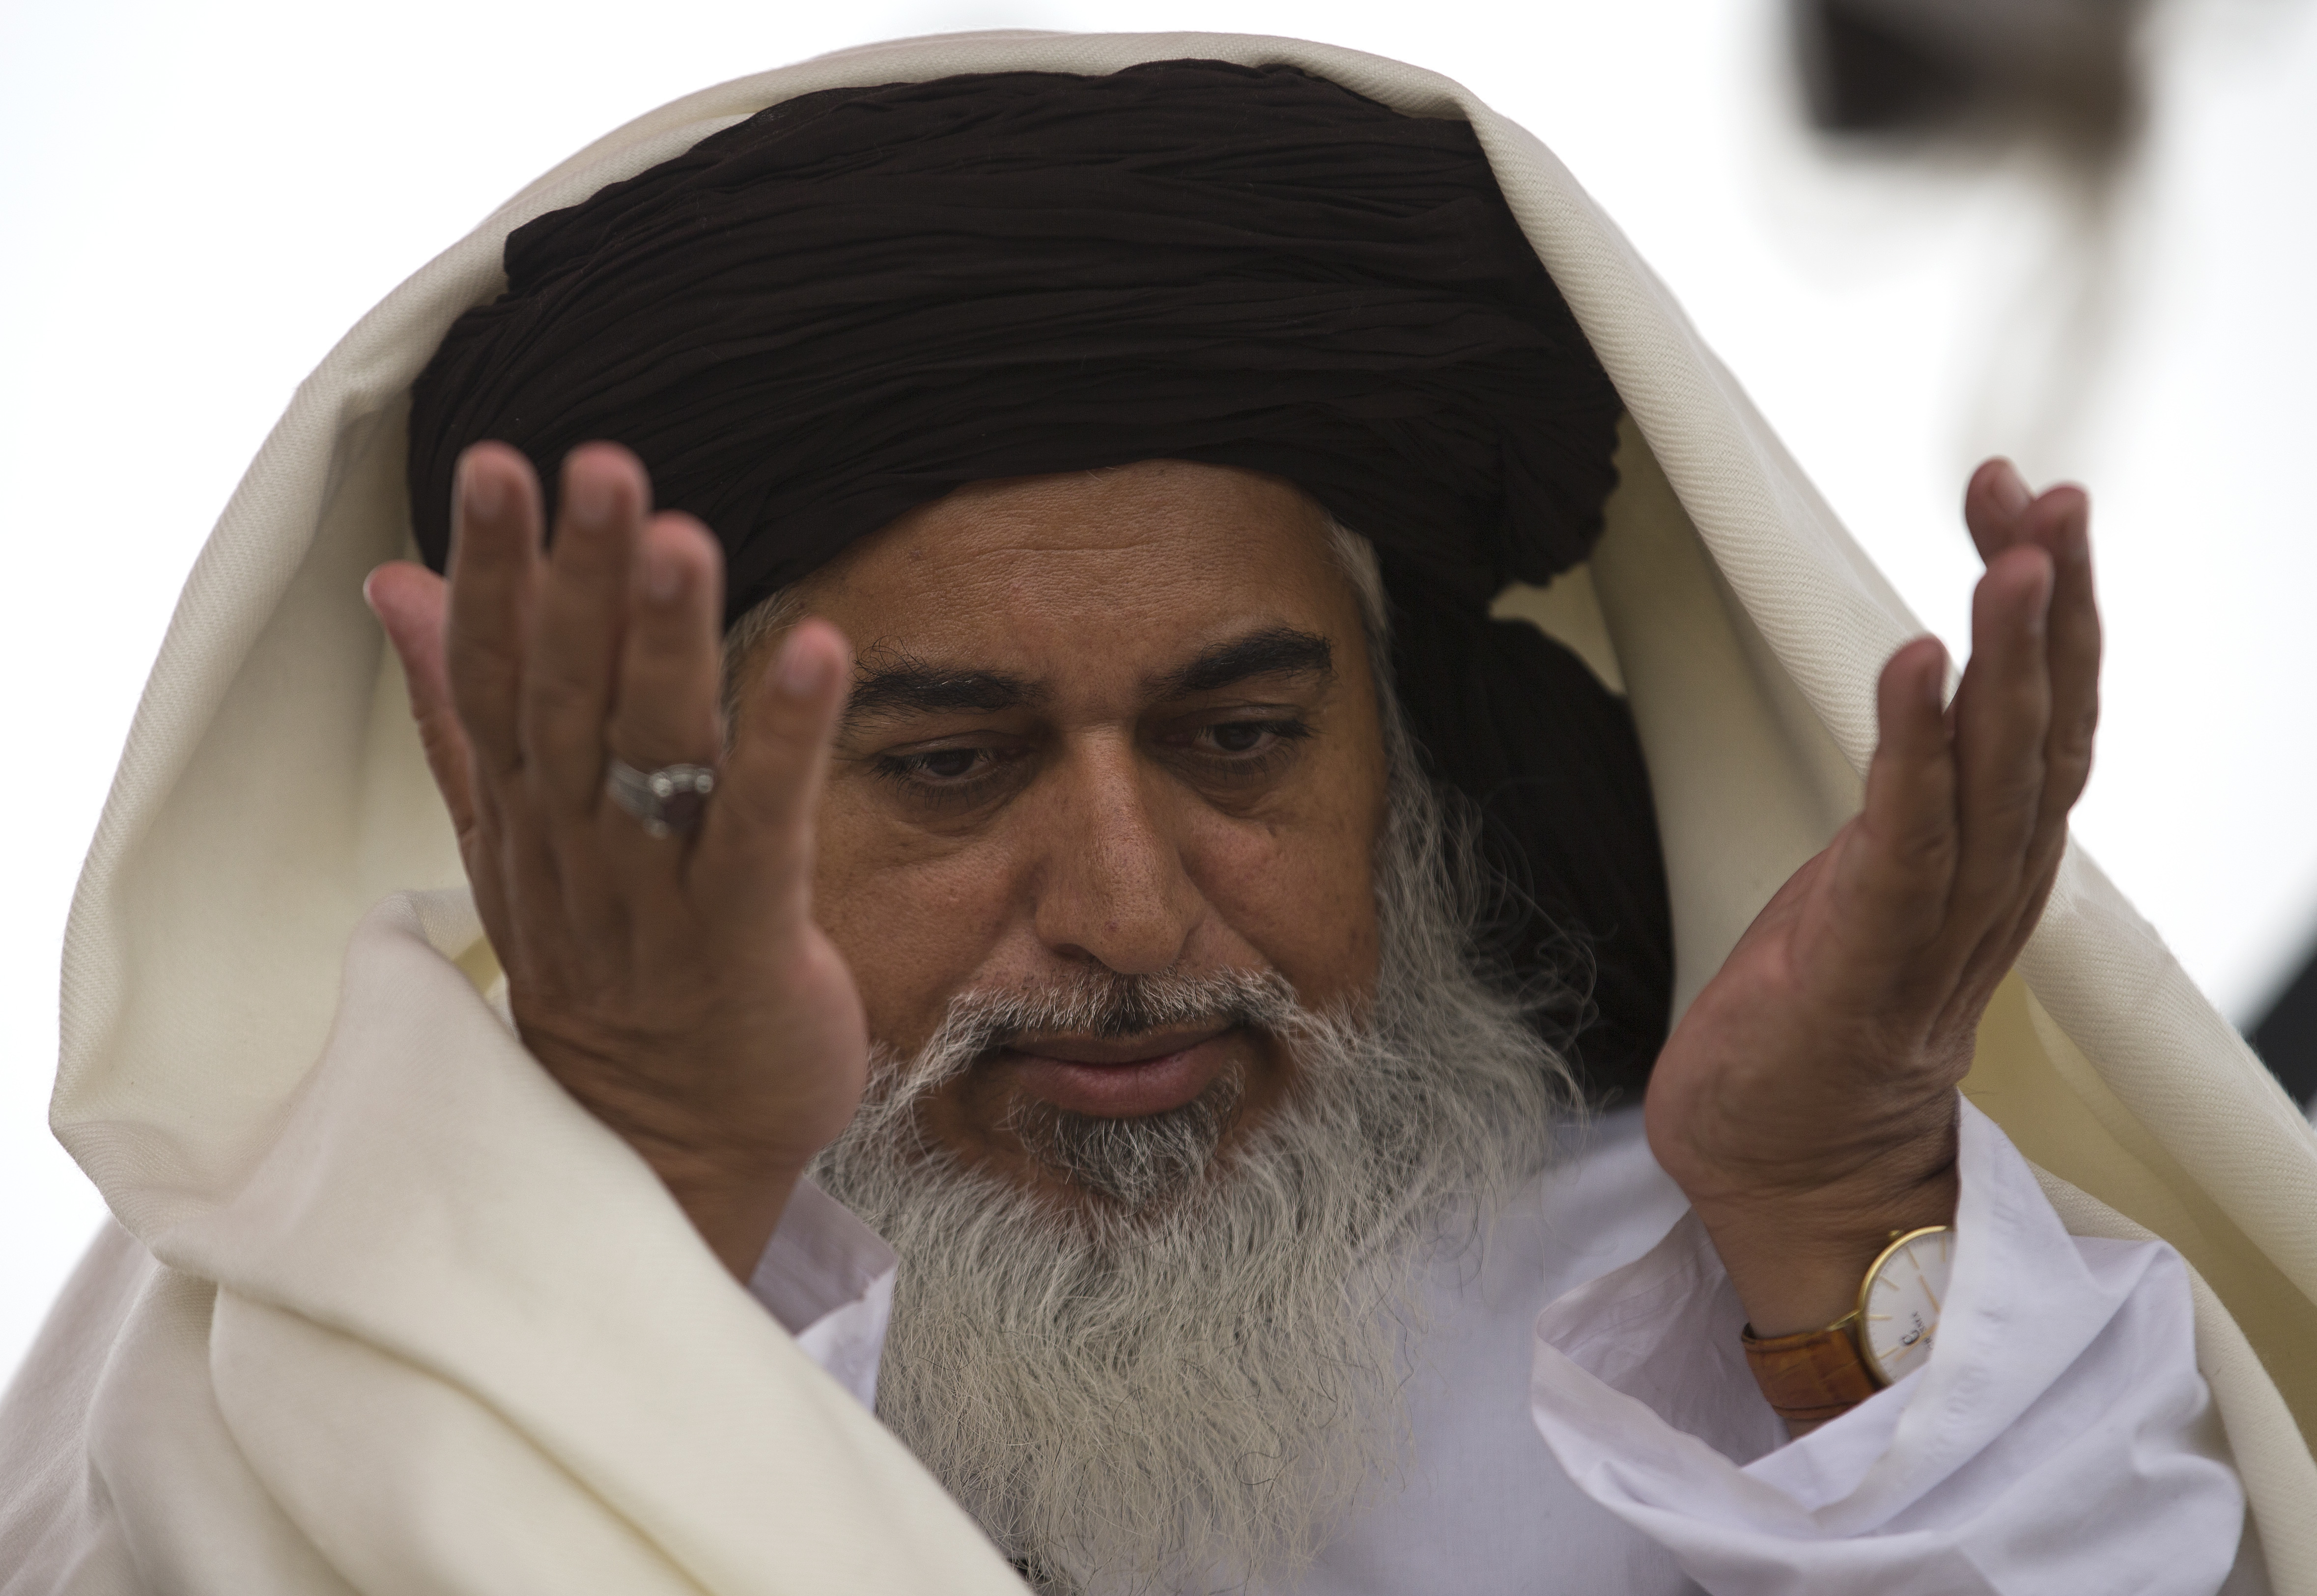 FILE - In this Nov. 24, 2017 file photo, the head of the Pakistani Tehreek-e-Labbaik radical religious party, Khadim Hussain Rizvi prays during a sit-in protest in Islamabad, Pakistan. The party of a radical Islamic cleric who disrupted daily life with rallies across Pakistan following the acquittal of a Christian woman in a blasphemy case says he has been arrested Friday, Nov. 23, 2018 by police in the city of Lahore. (AP Photo/B.K. Bangash, file)